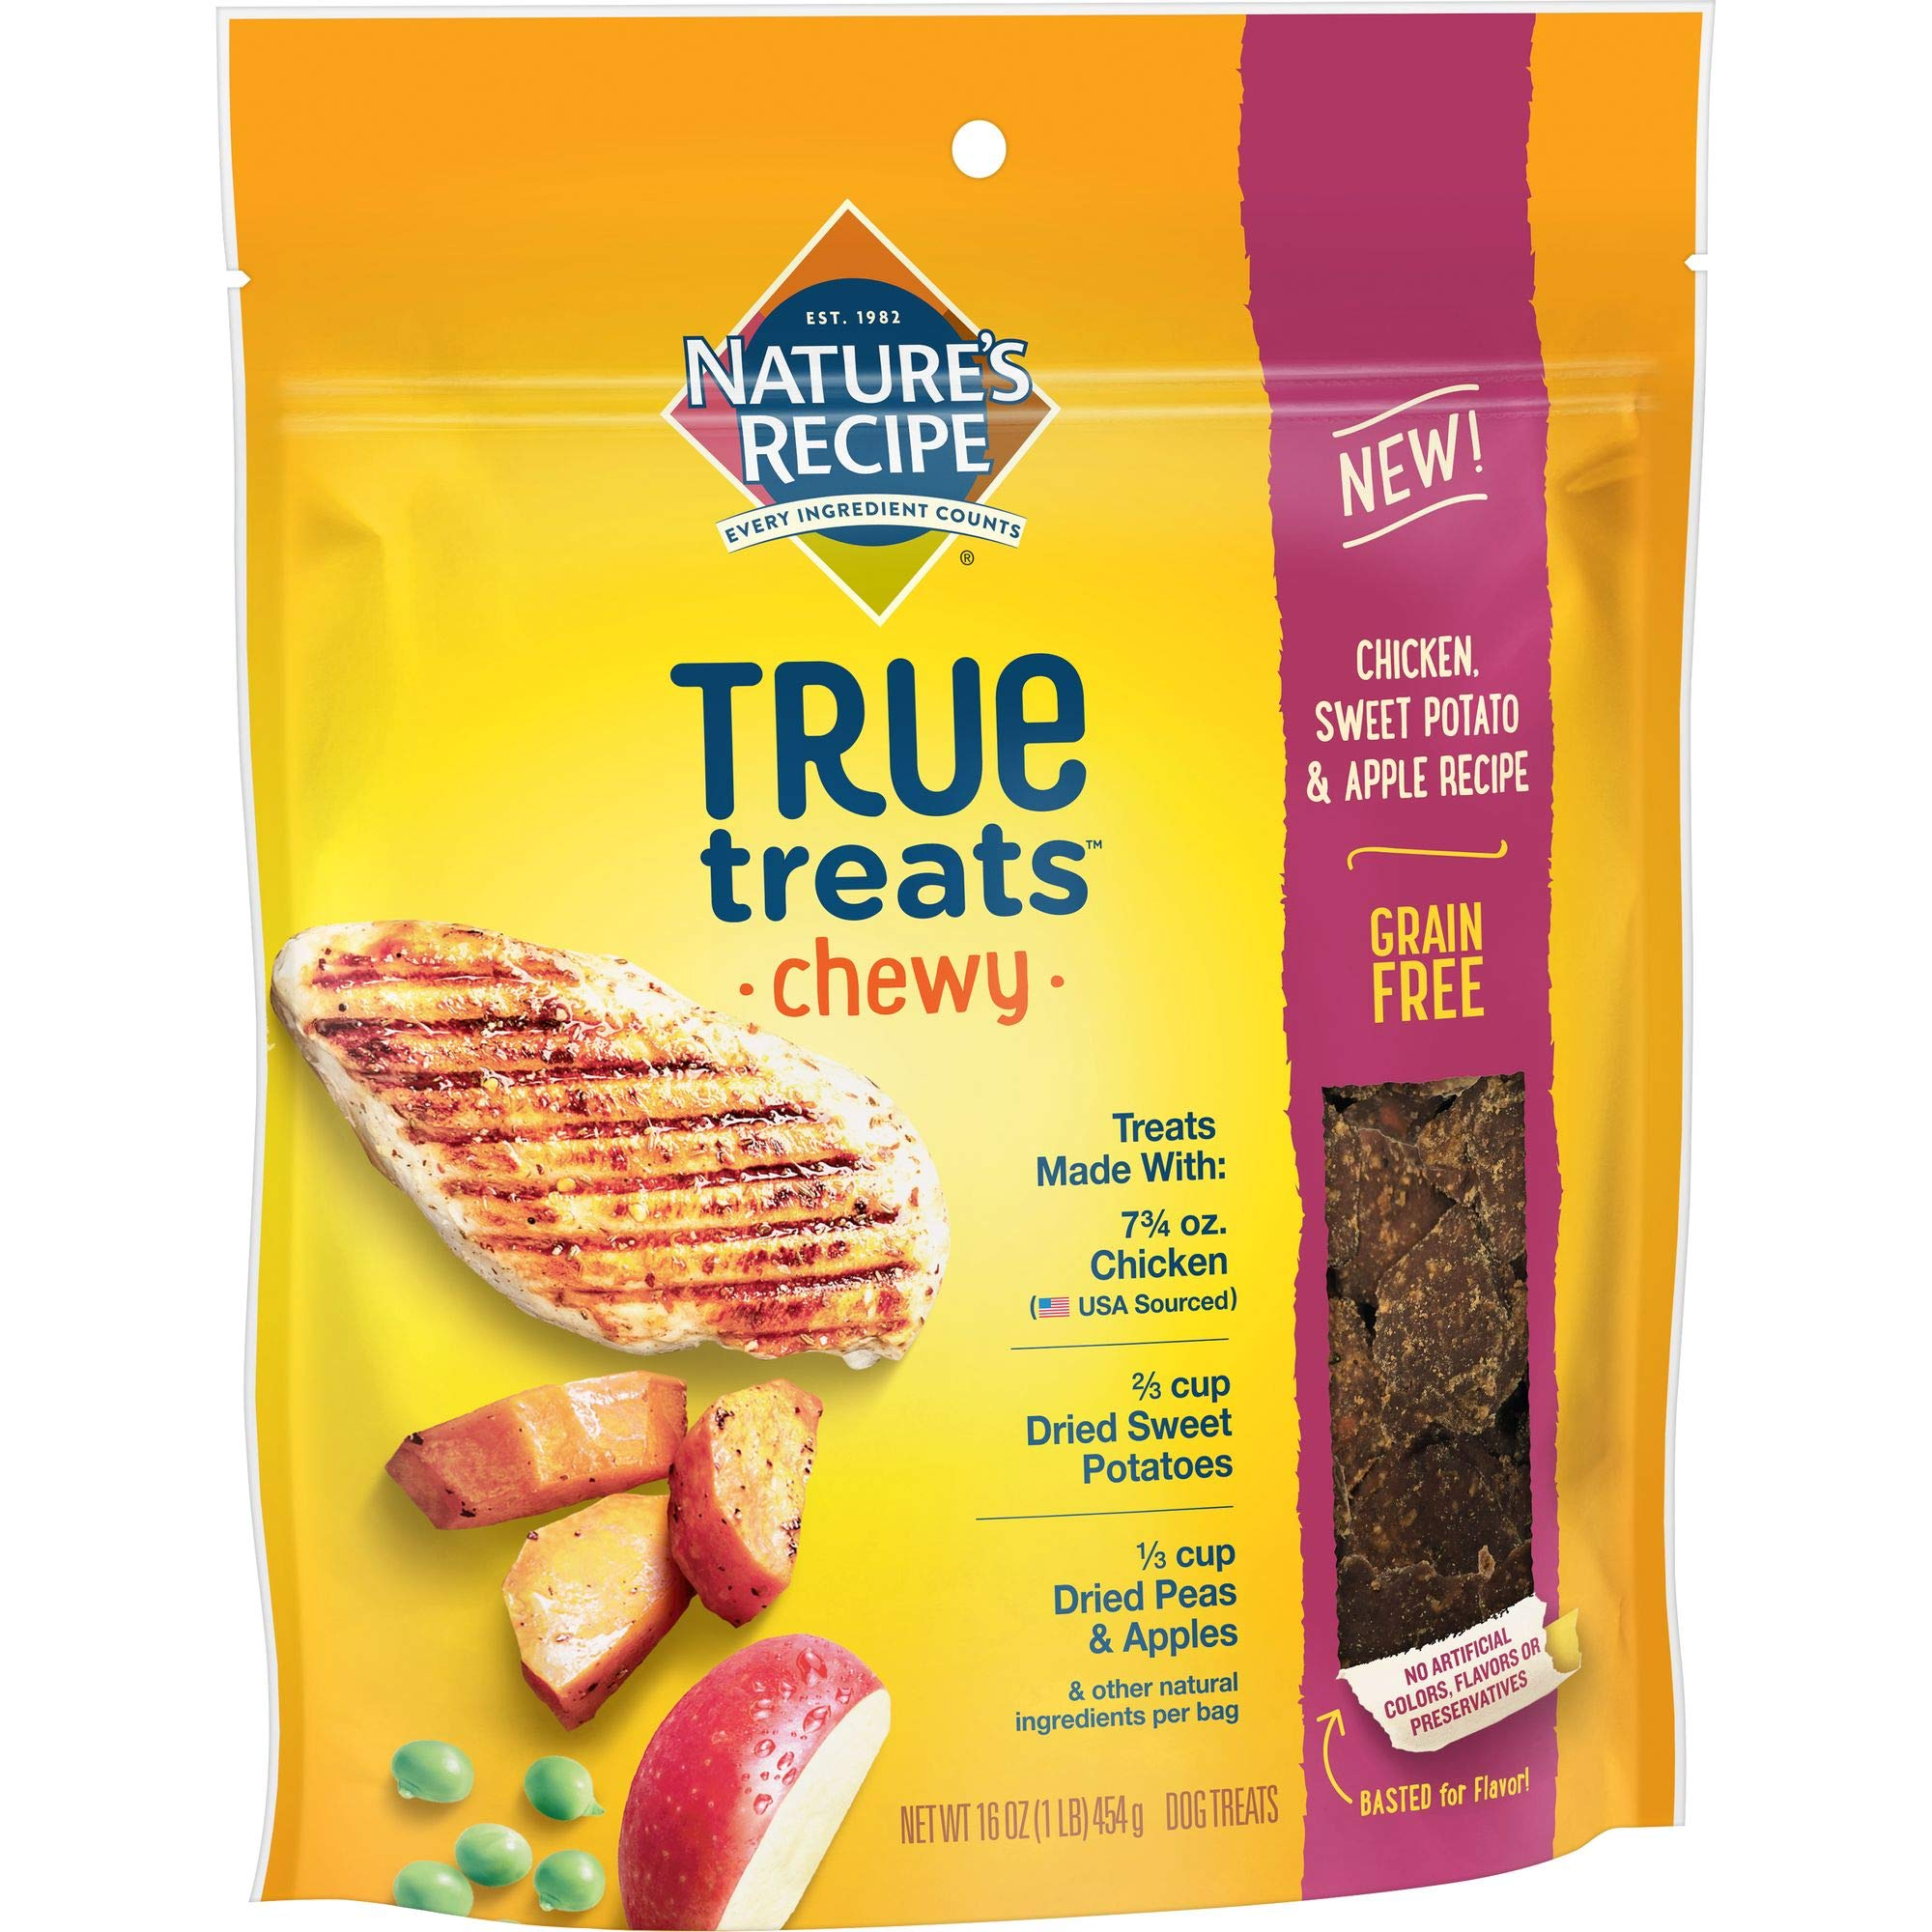 Nature's Recipe True treats